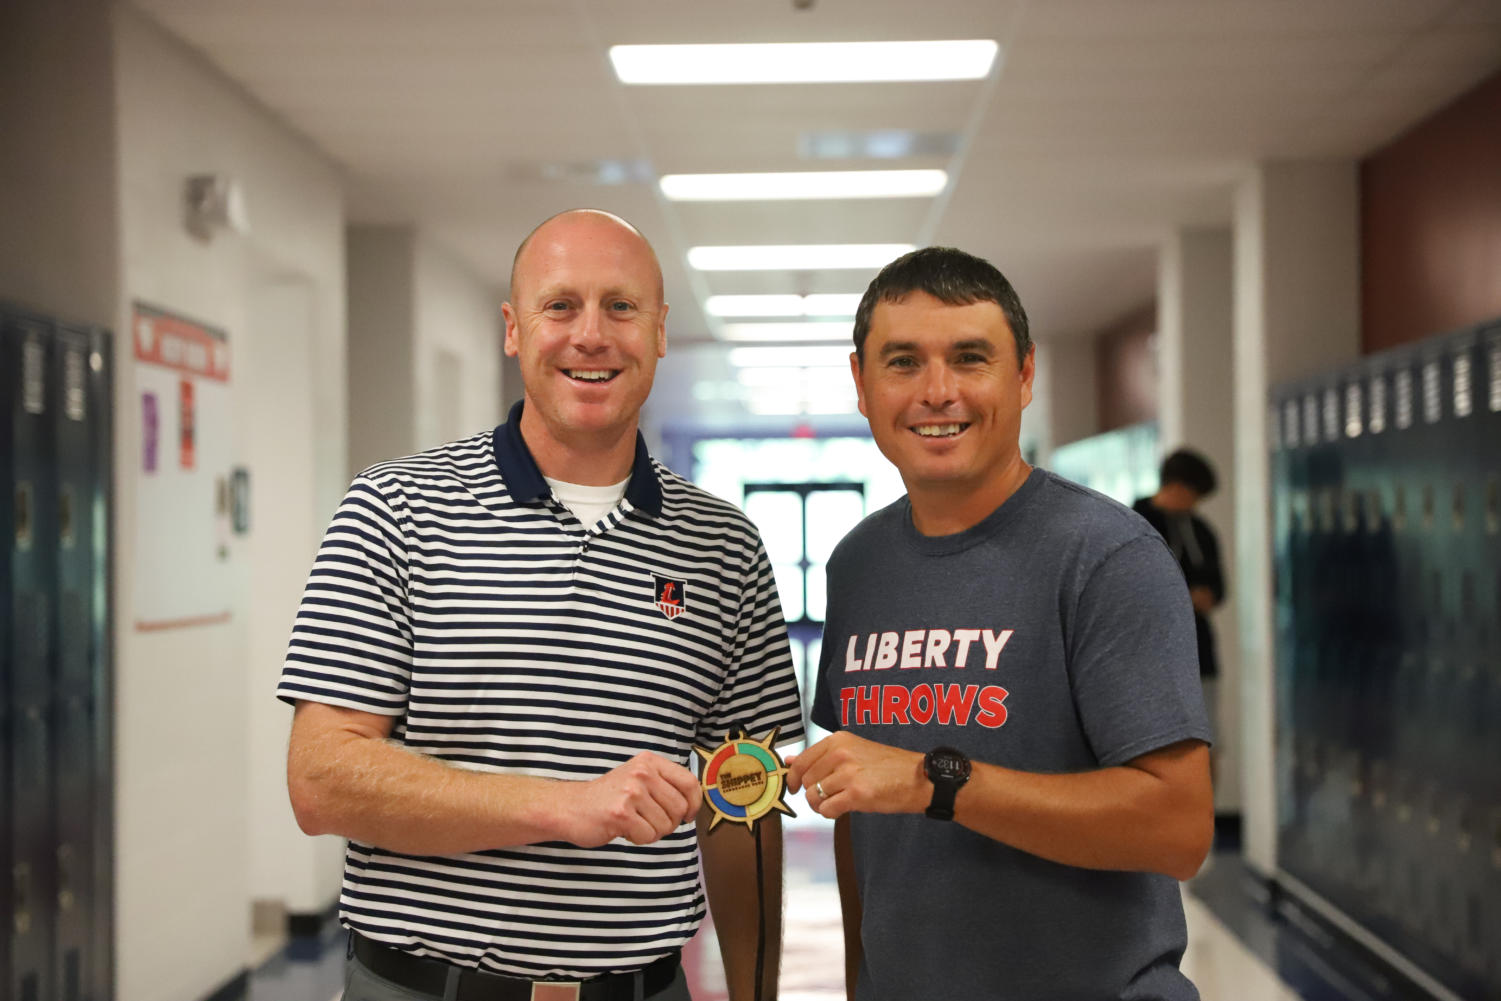 Mr. Eldredge (left) and Mr. Glavin (right) pose with the medal they won for the race.